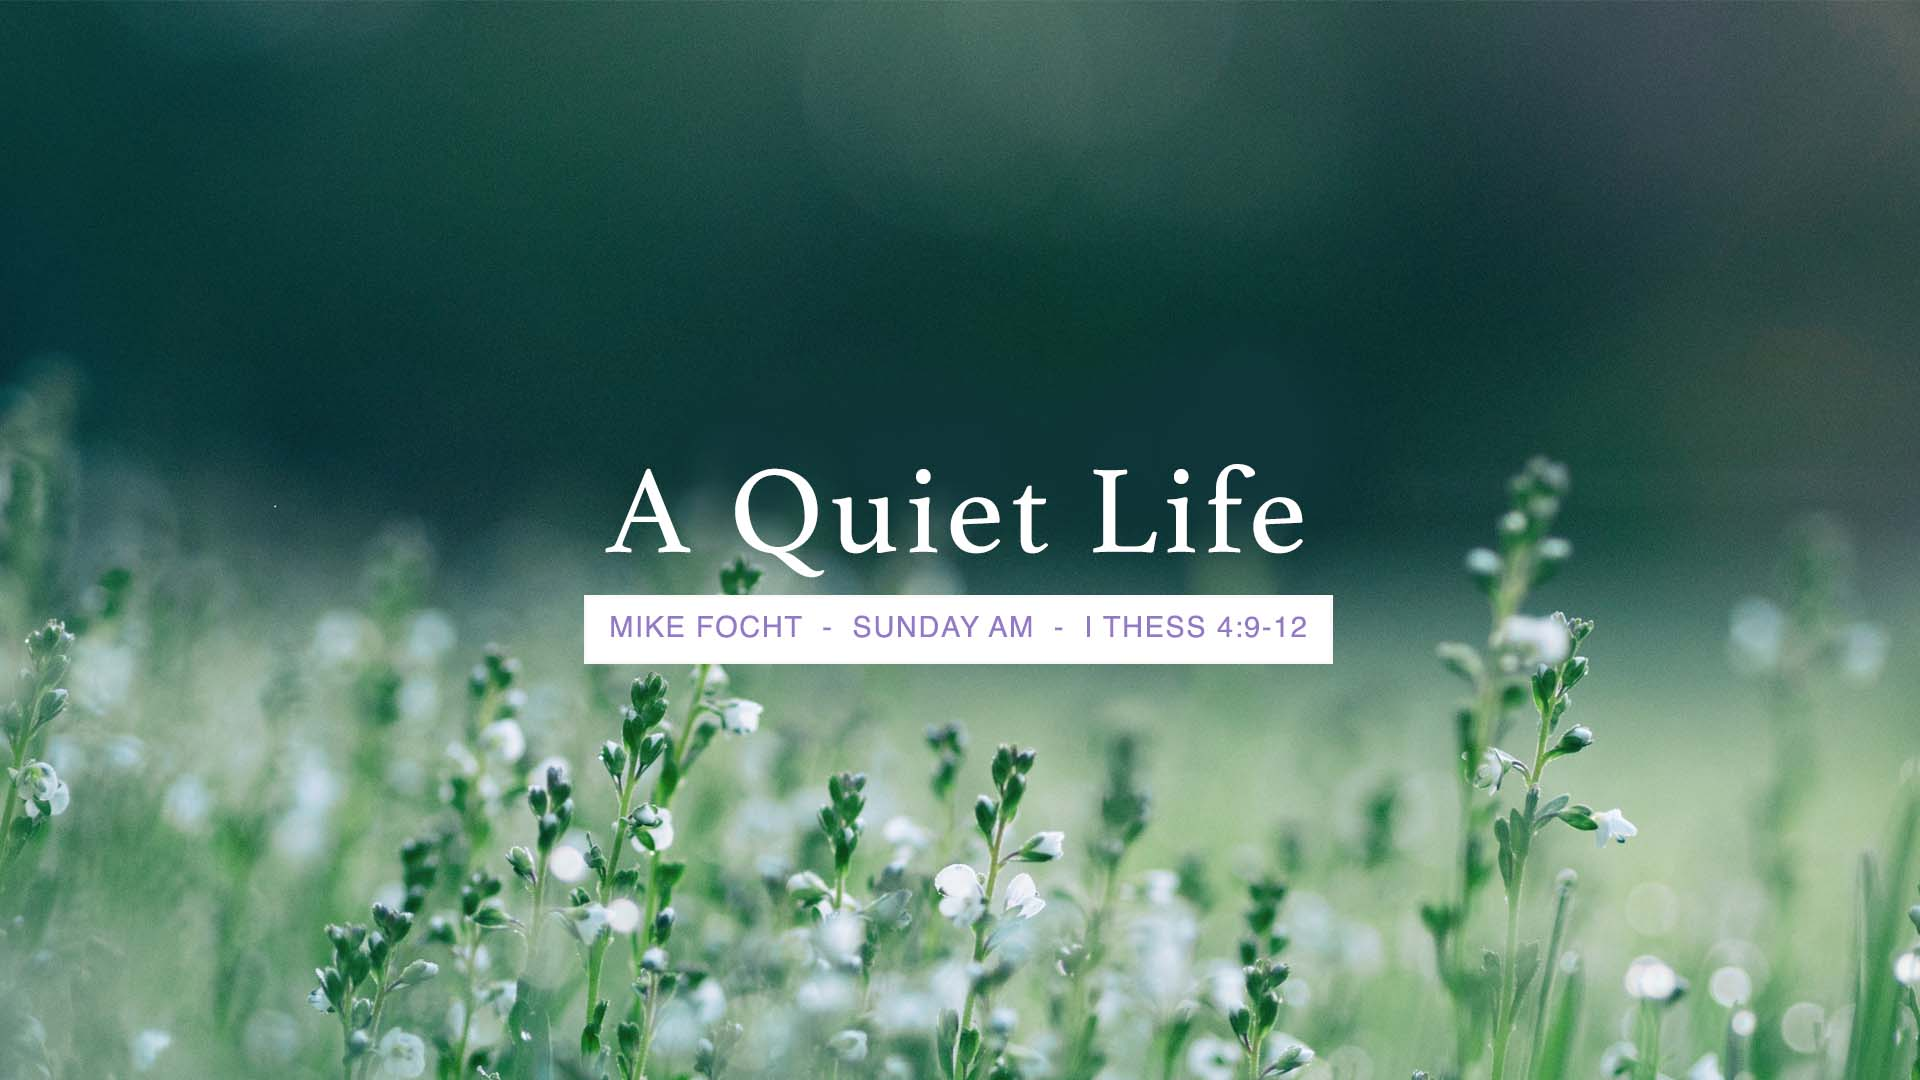 A Quiet Life - 1 Thessalonians 4:9-12